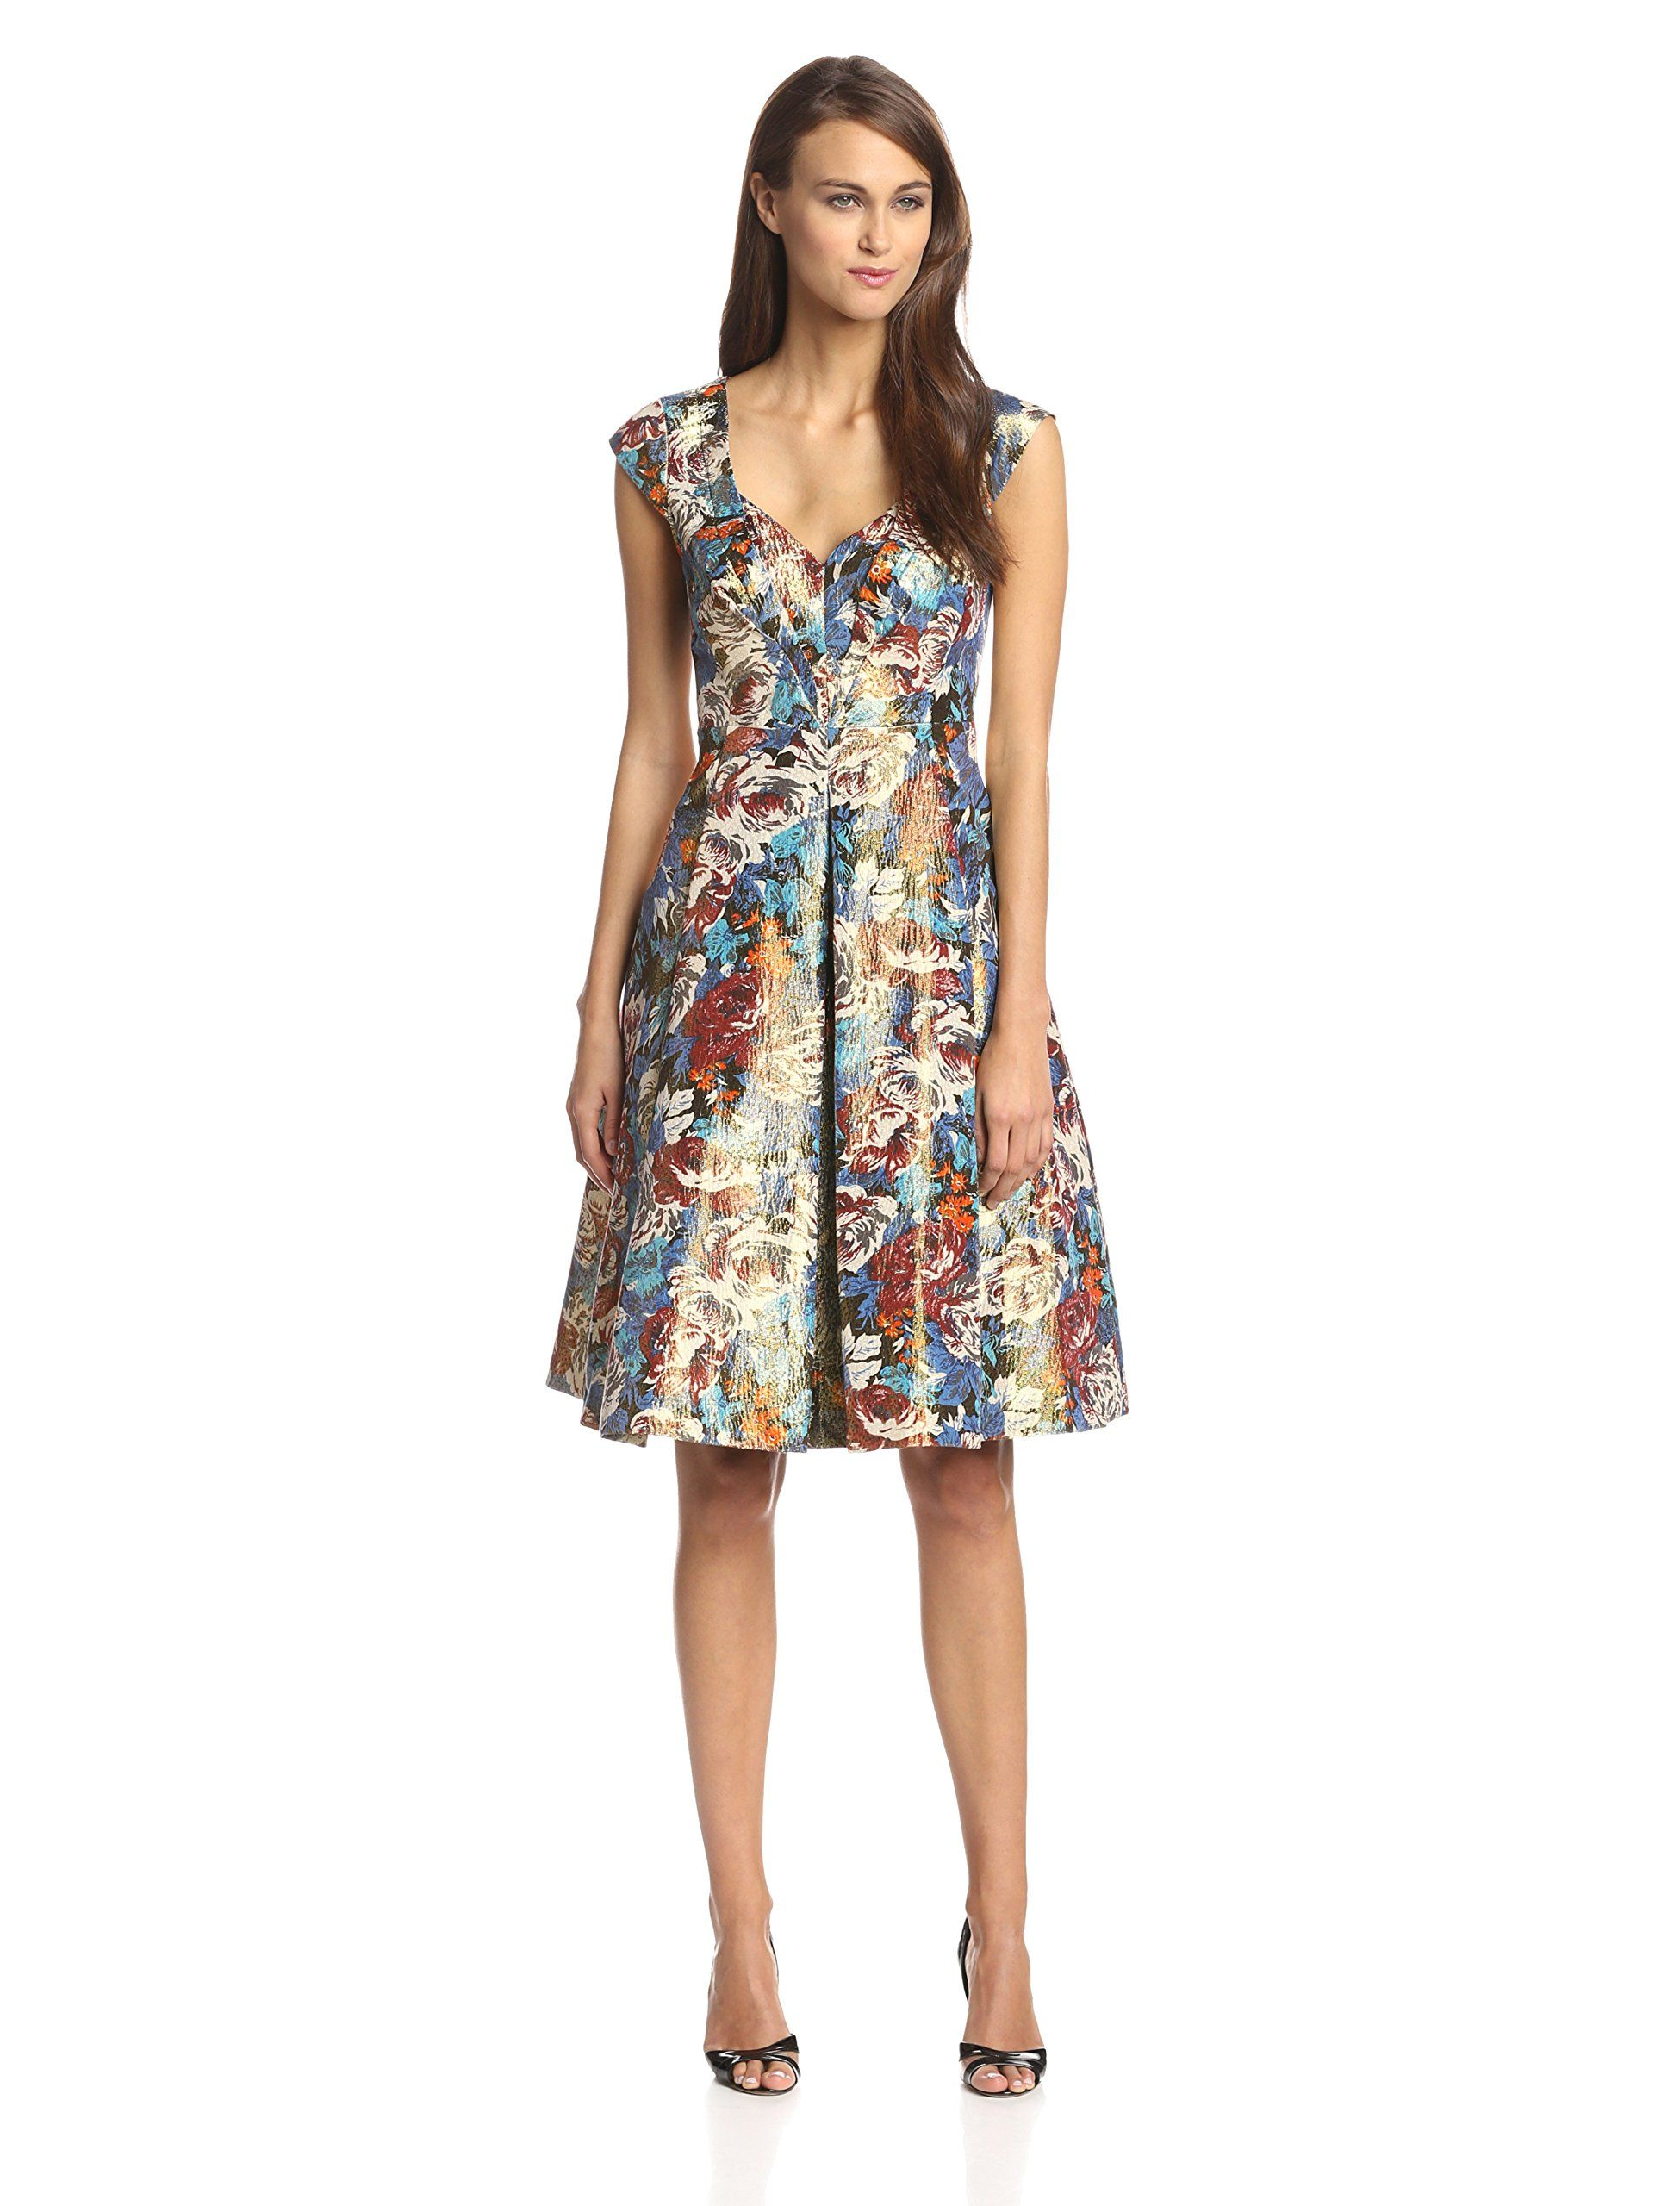 Tracy Reese Women's Floral Lame Fit and Flare Dress, Multi, 4